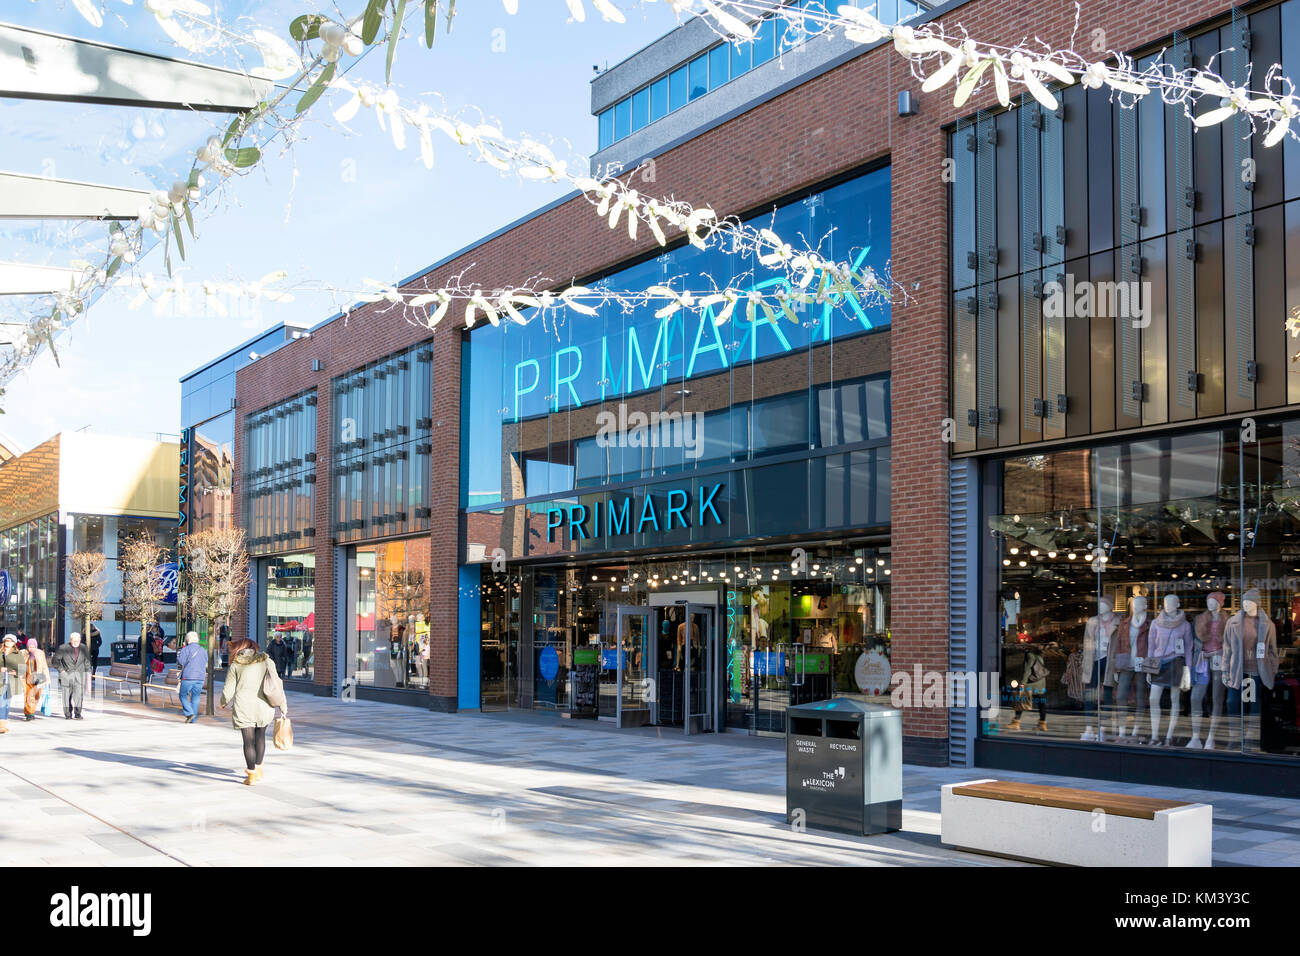 Primark store at Christmas, Union Square, The Lexicon, Bracknell, Berkshire, England, United Kingdom - Stock Image